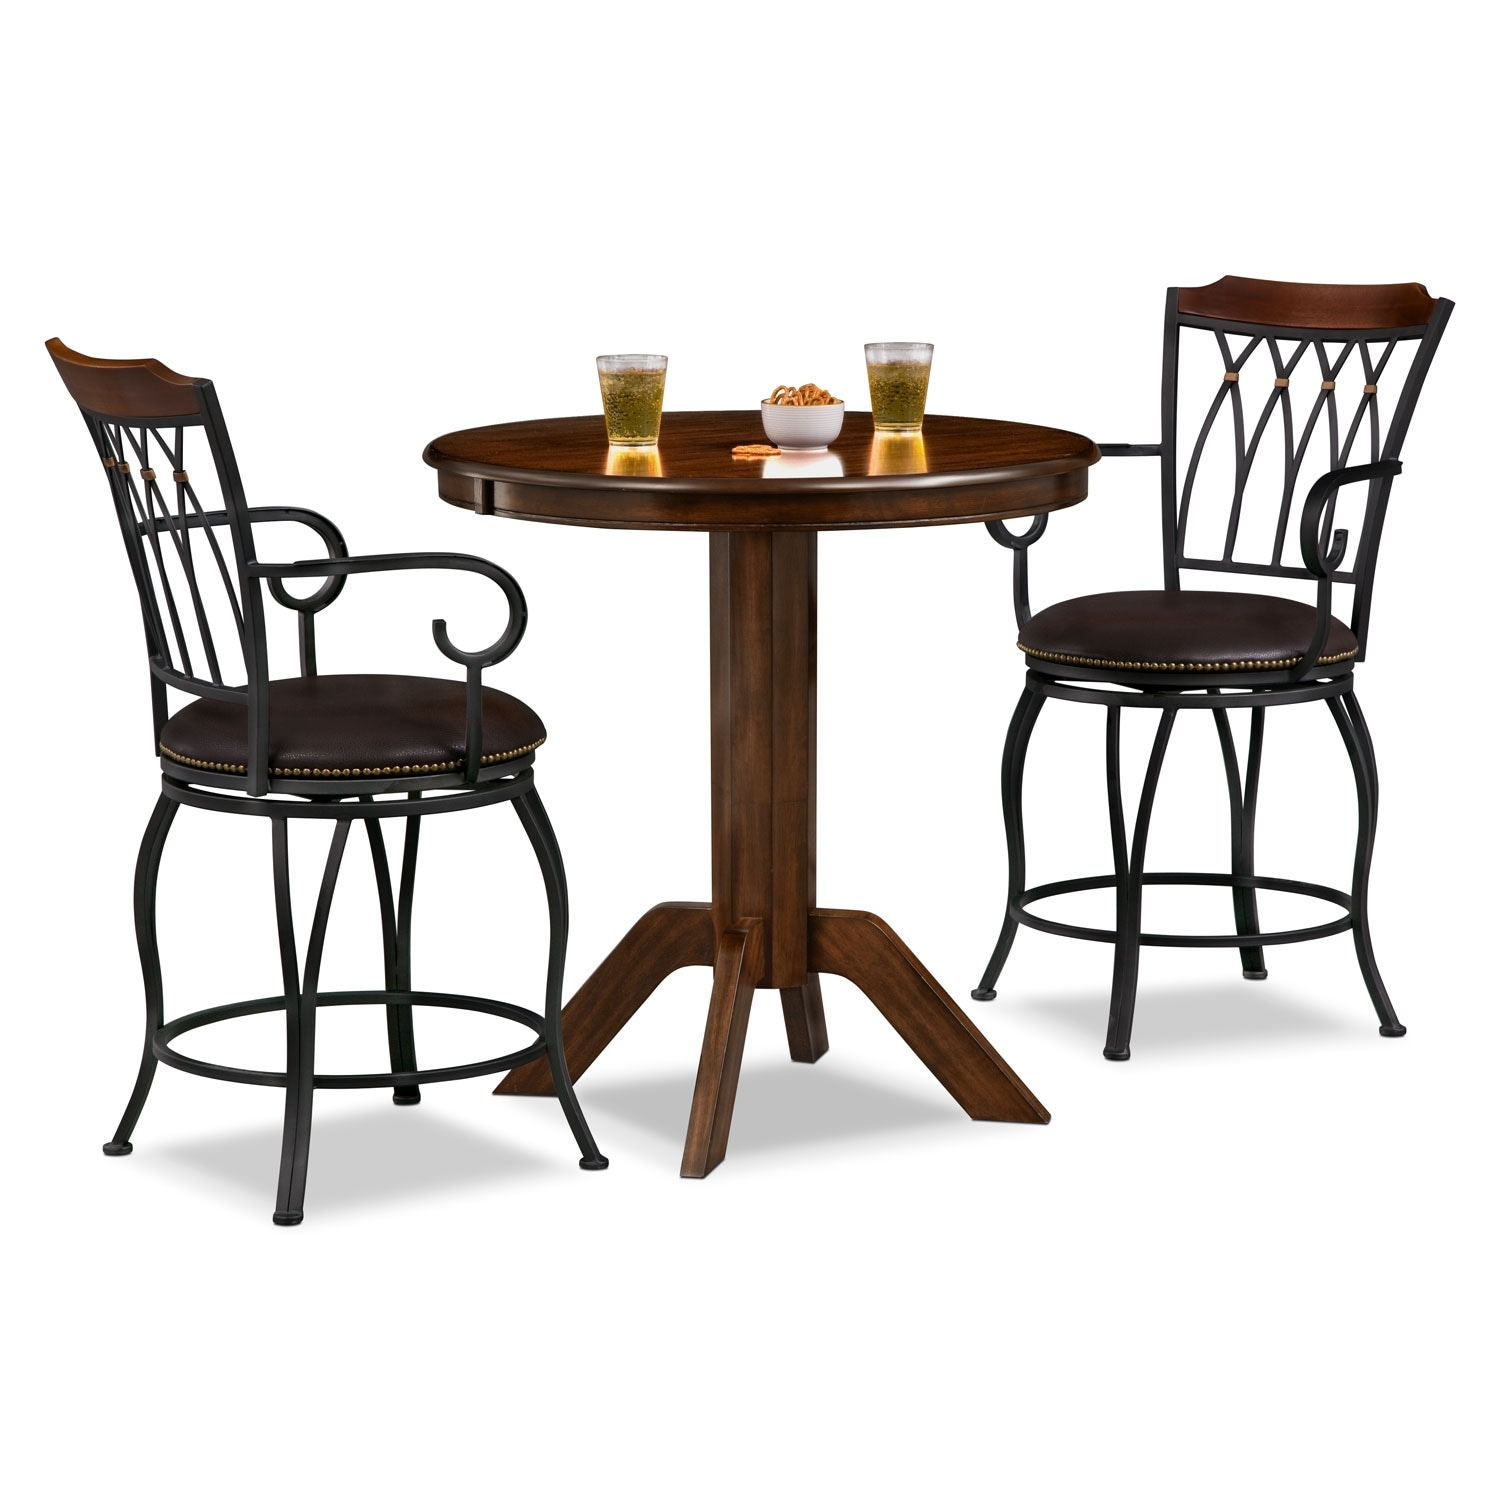 Accent and Occasional Furniture - Concord Winfield 3 Pc. Counter-Height Dinette